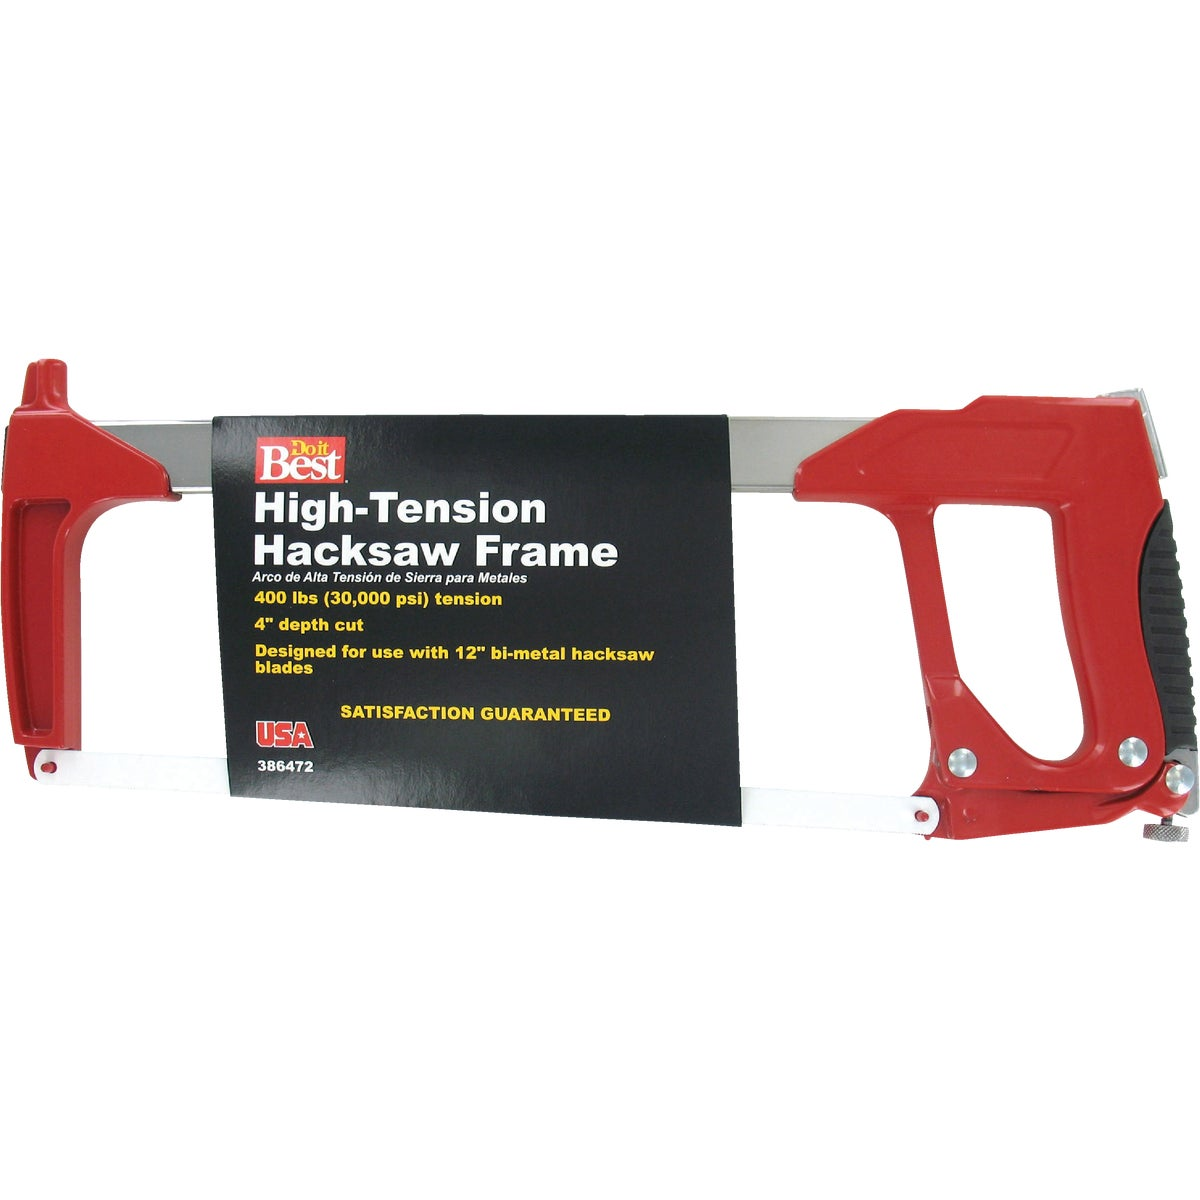 HIGH TENSION HACKSAW